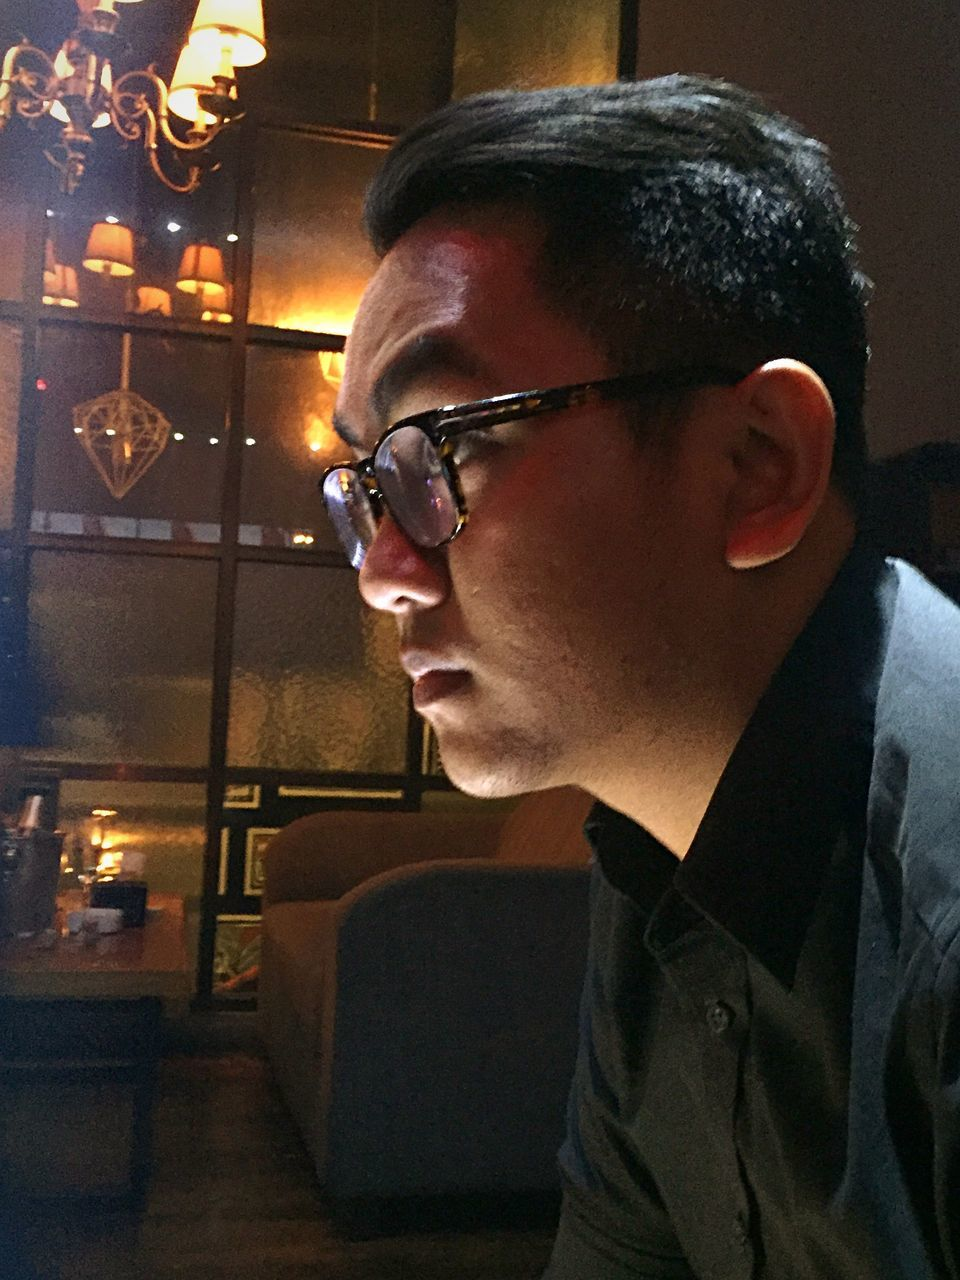 real people, one person, young adult, young men, glasses, indoors, night, eyeglasses, leisure activity, lifestyles, illuminated, close-up